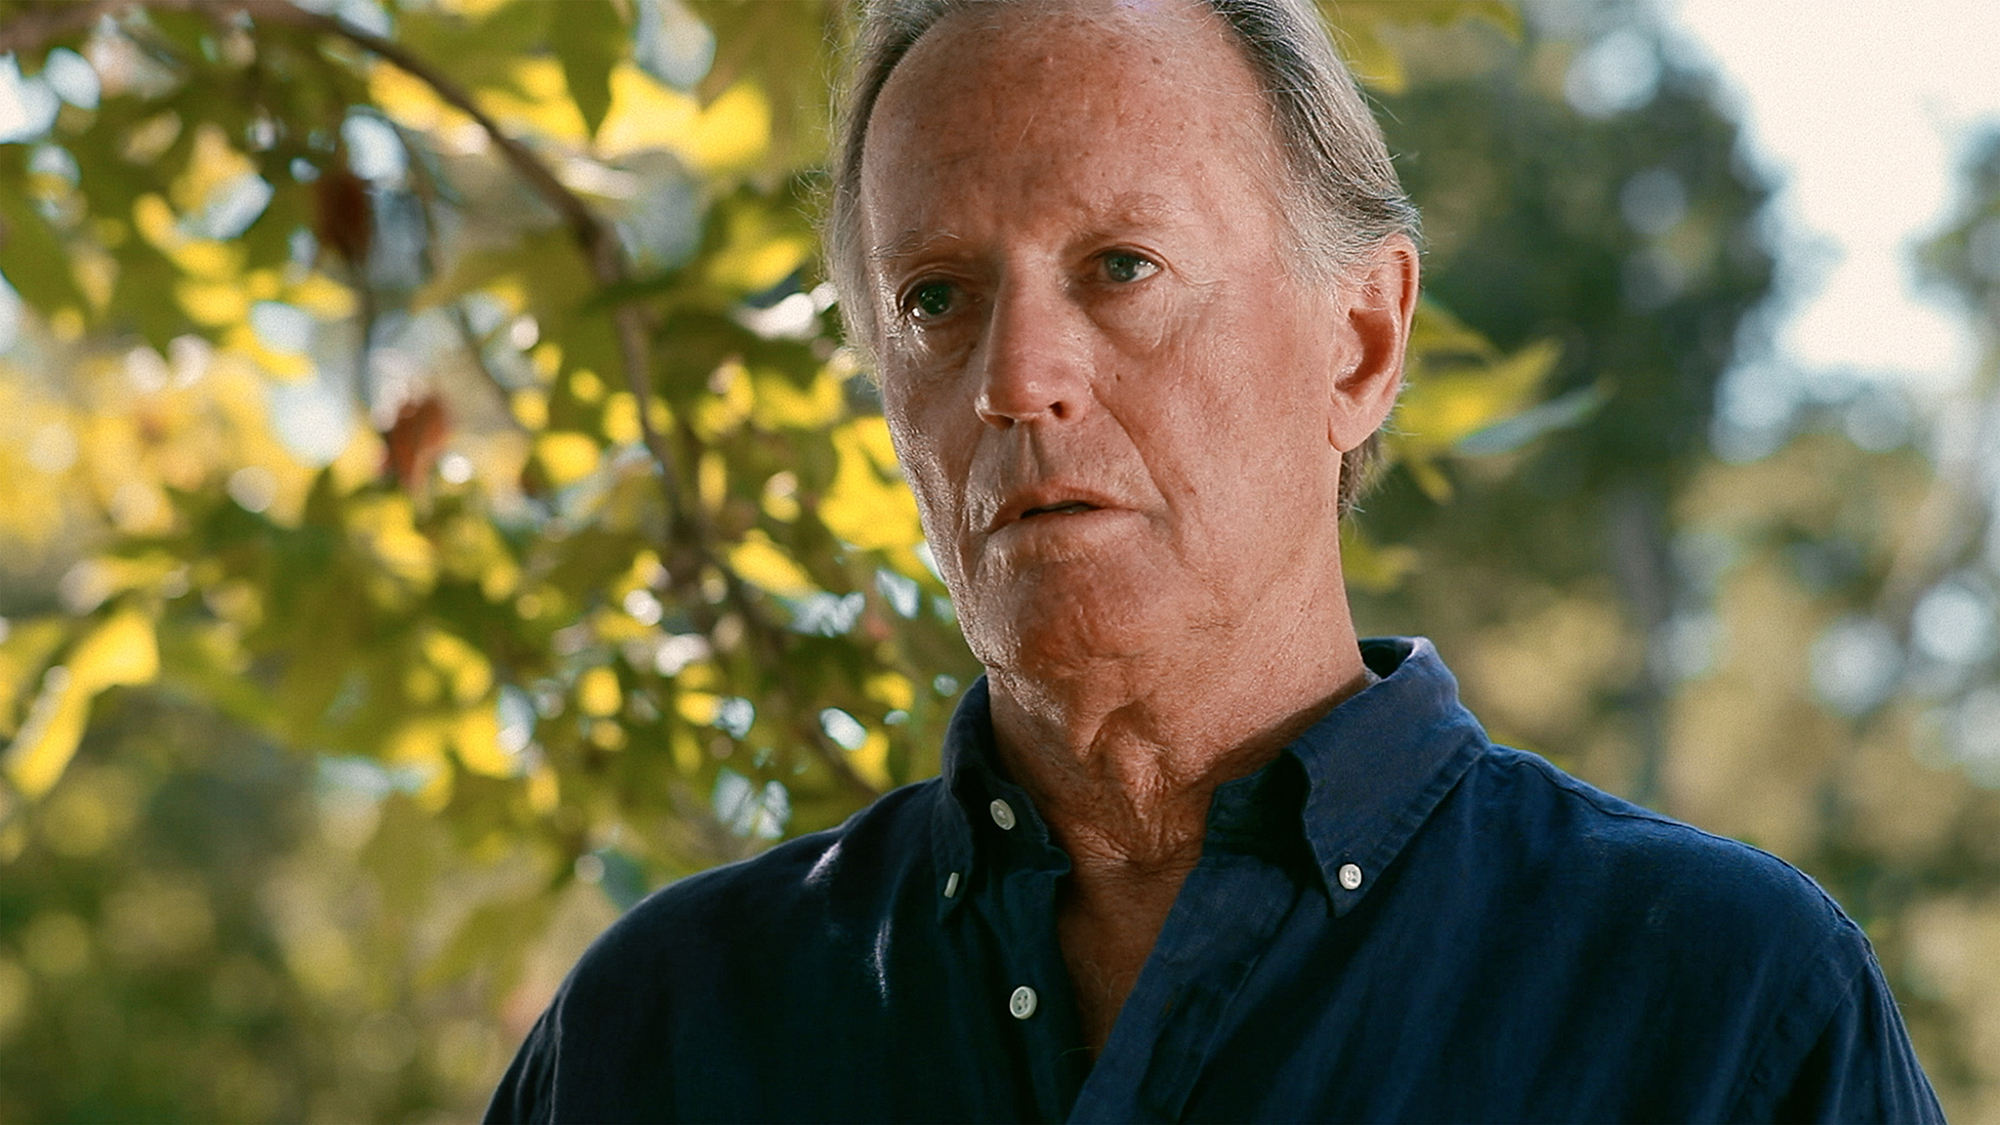 Peter Fonda as the reclusive author, Norman Bettinger, in The Magic Hours. The Magic Hours - a film by Zoey Taylor and David Connelly